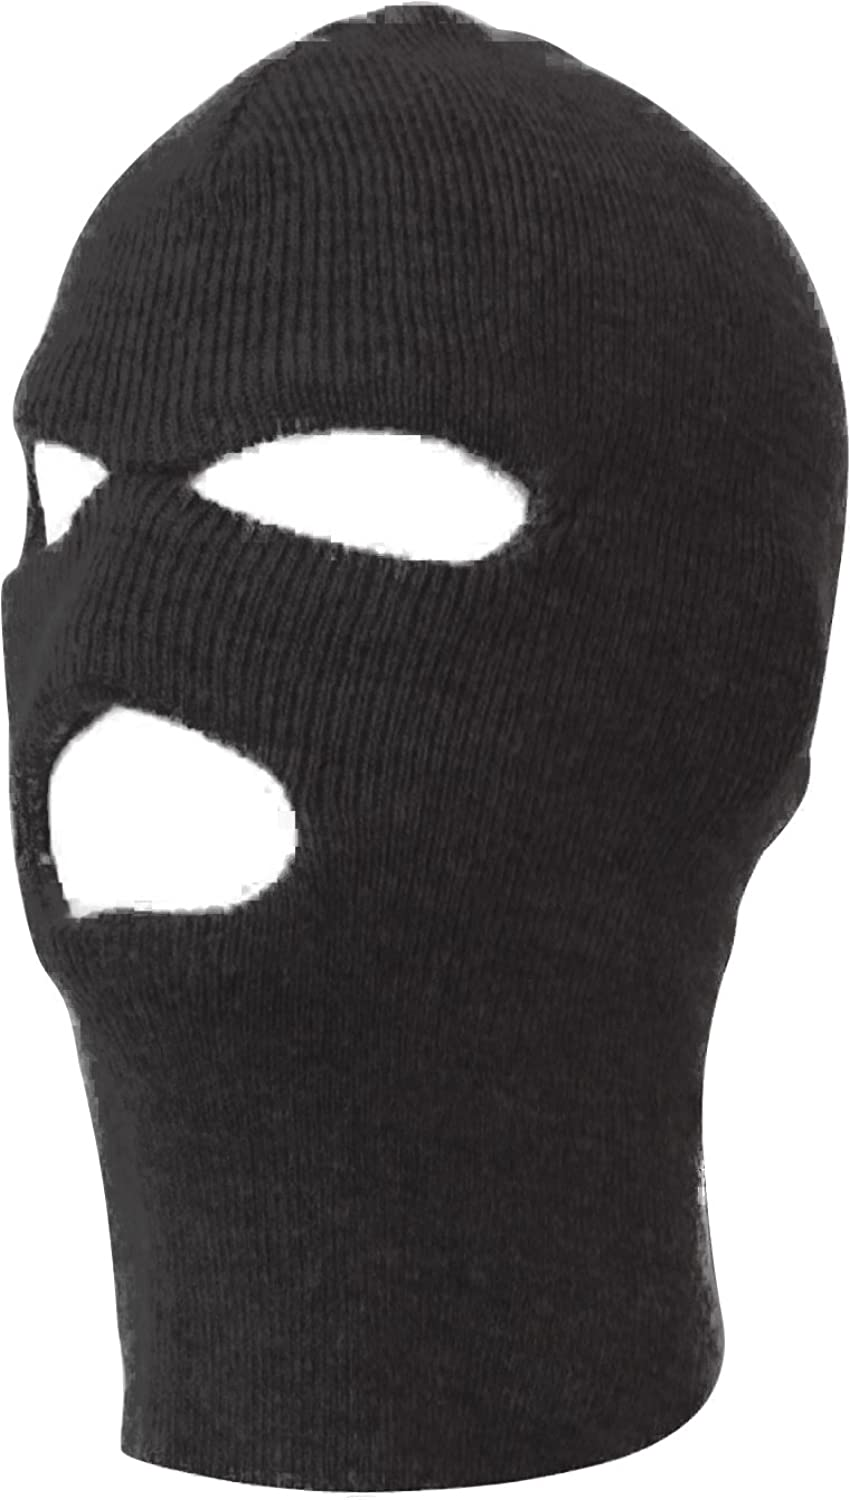 Winter Knit Ski Mask 3-Hole, 12 Pack Adults, Warm Outdoor Face Cover ...